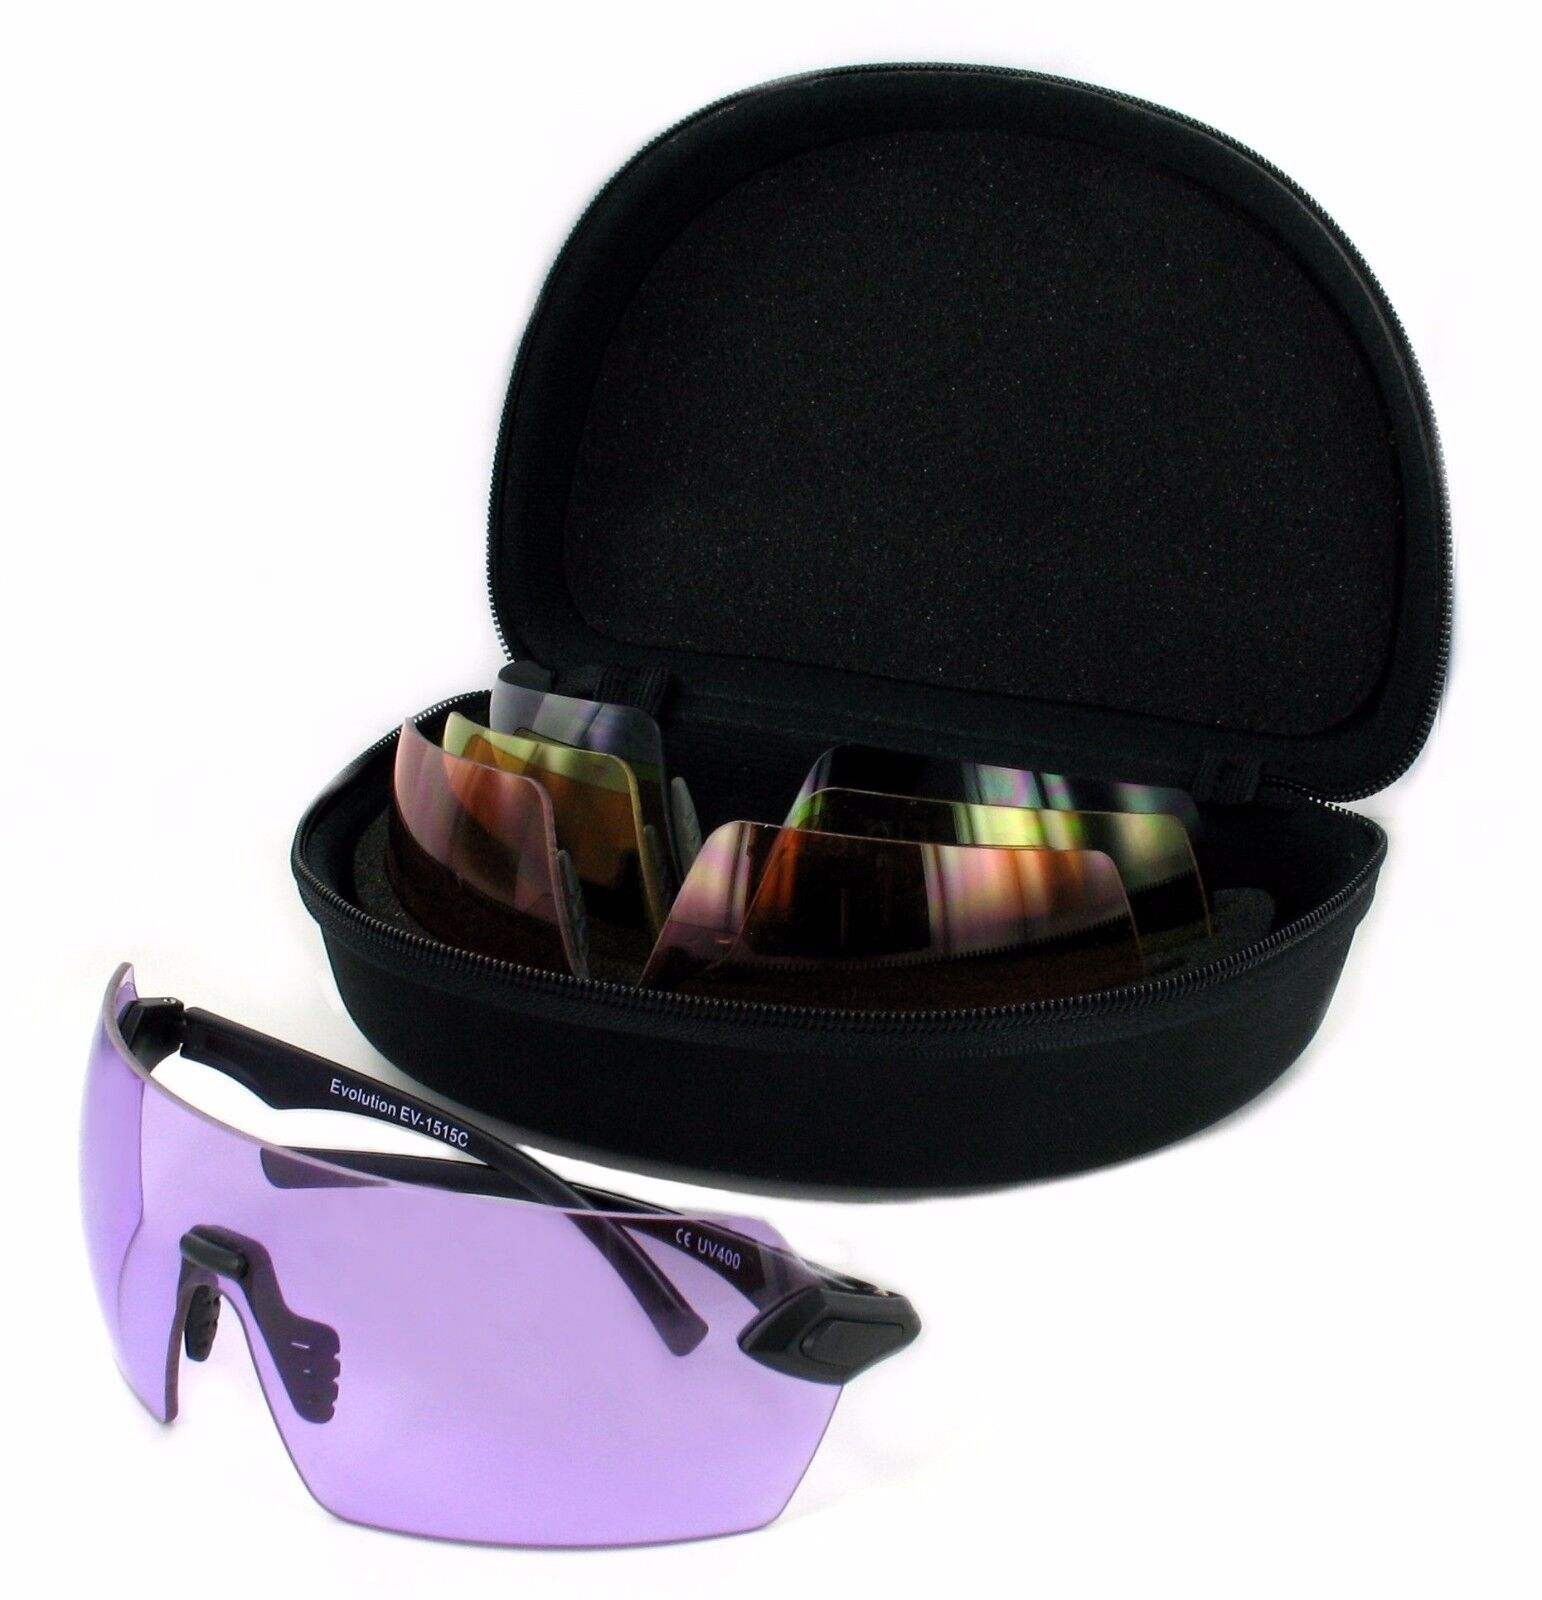 Evolution Matrix Matrix Matrix Sports Sunglasses x4 Lense Set f80768